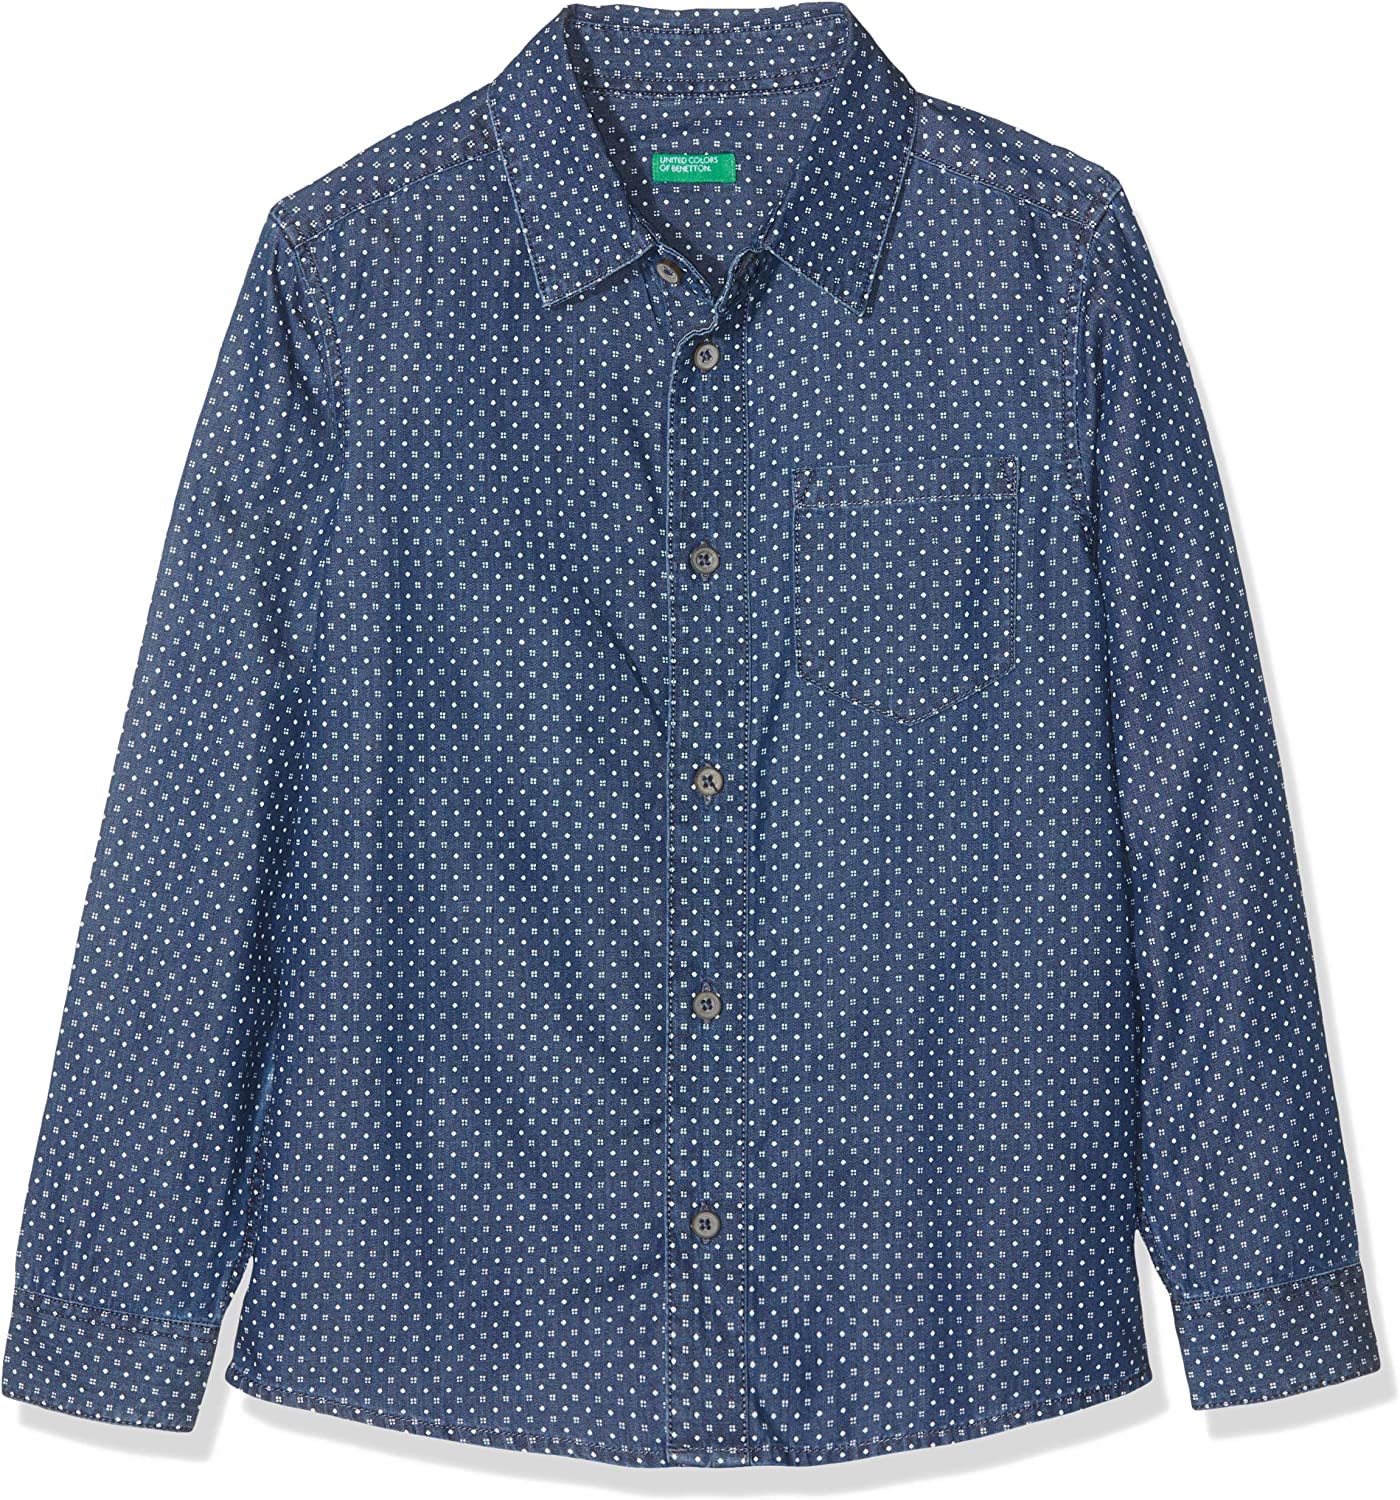 United Colors of Benetton Boys Casual Shirt